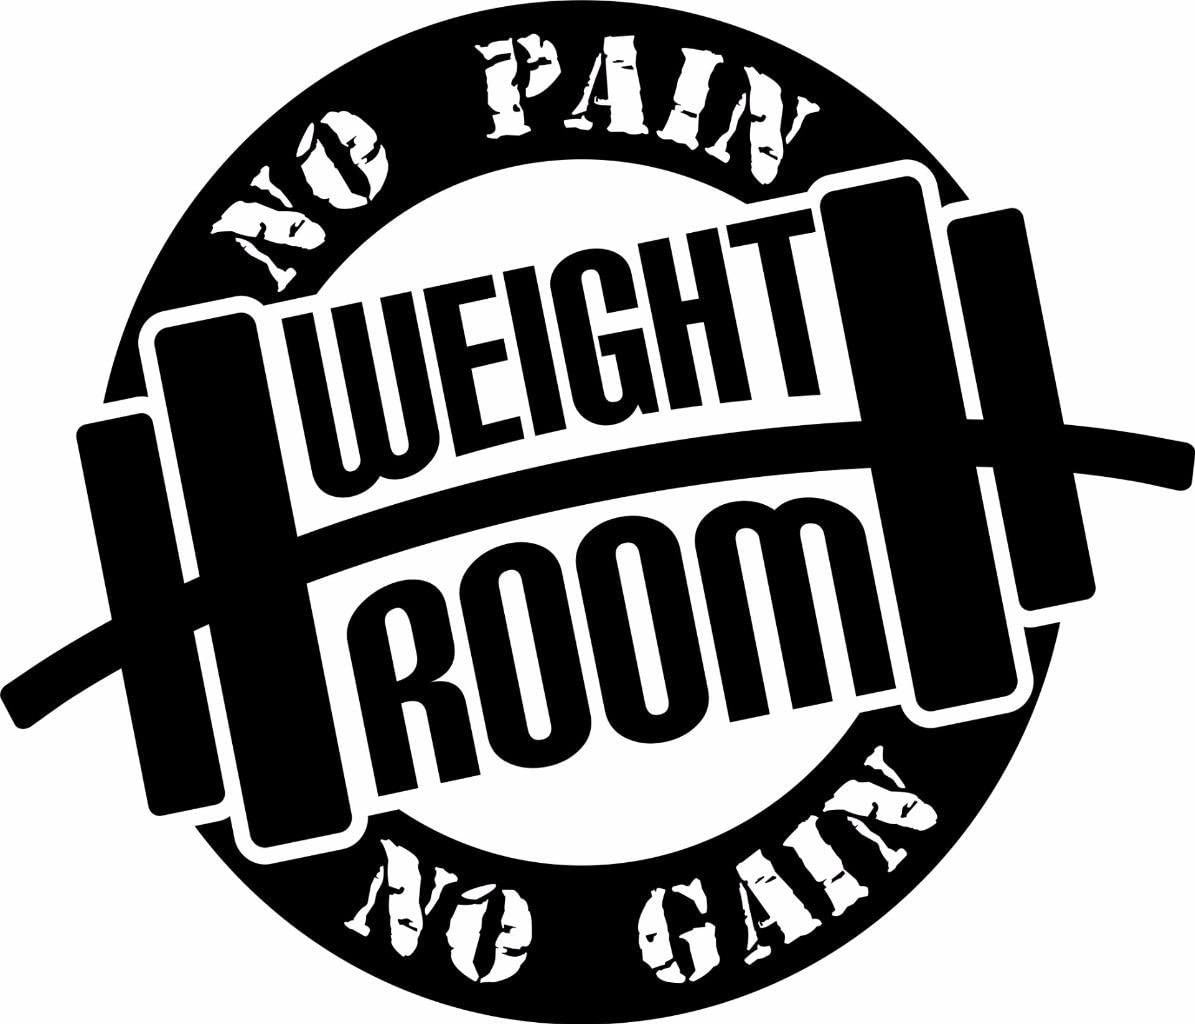 Weight Room No Pain No Gain Quote- Motivation Workout Lifting Quote Vinyl Wall Sticker Decal for Gym Home Decor - 14 inch x 12 inch